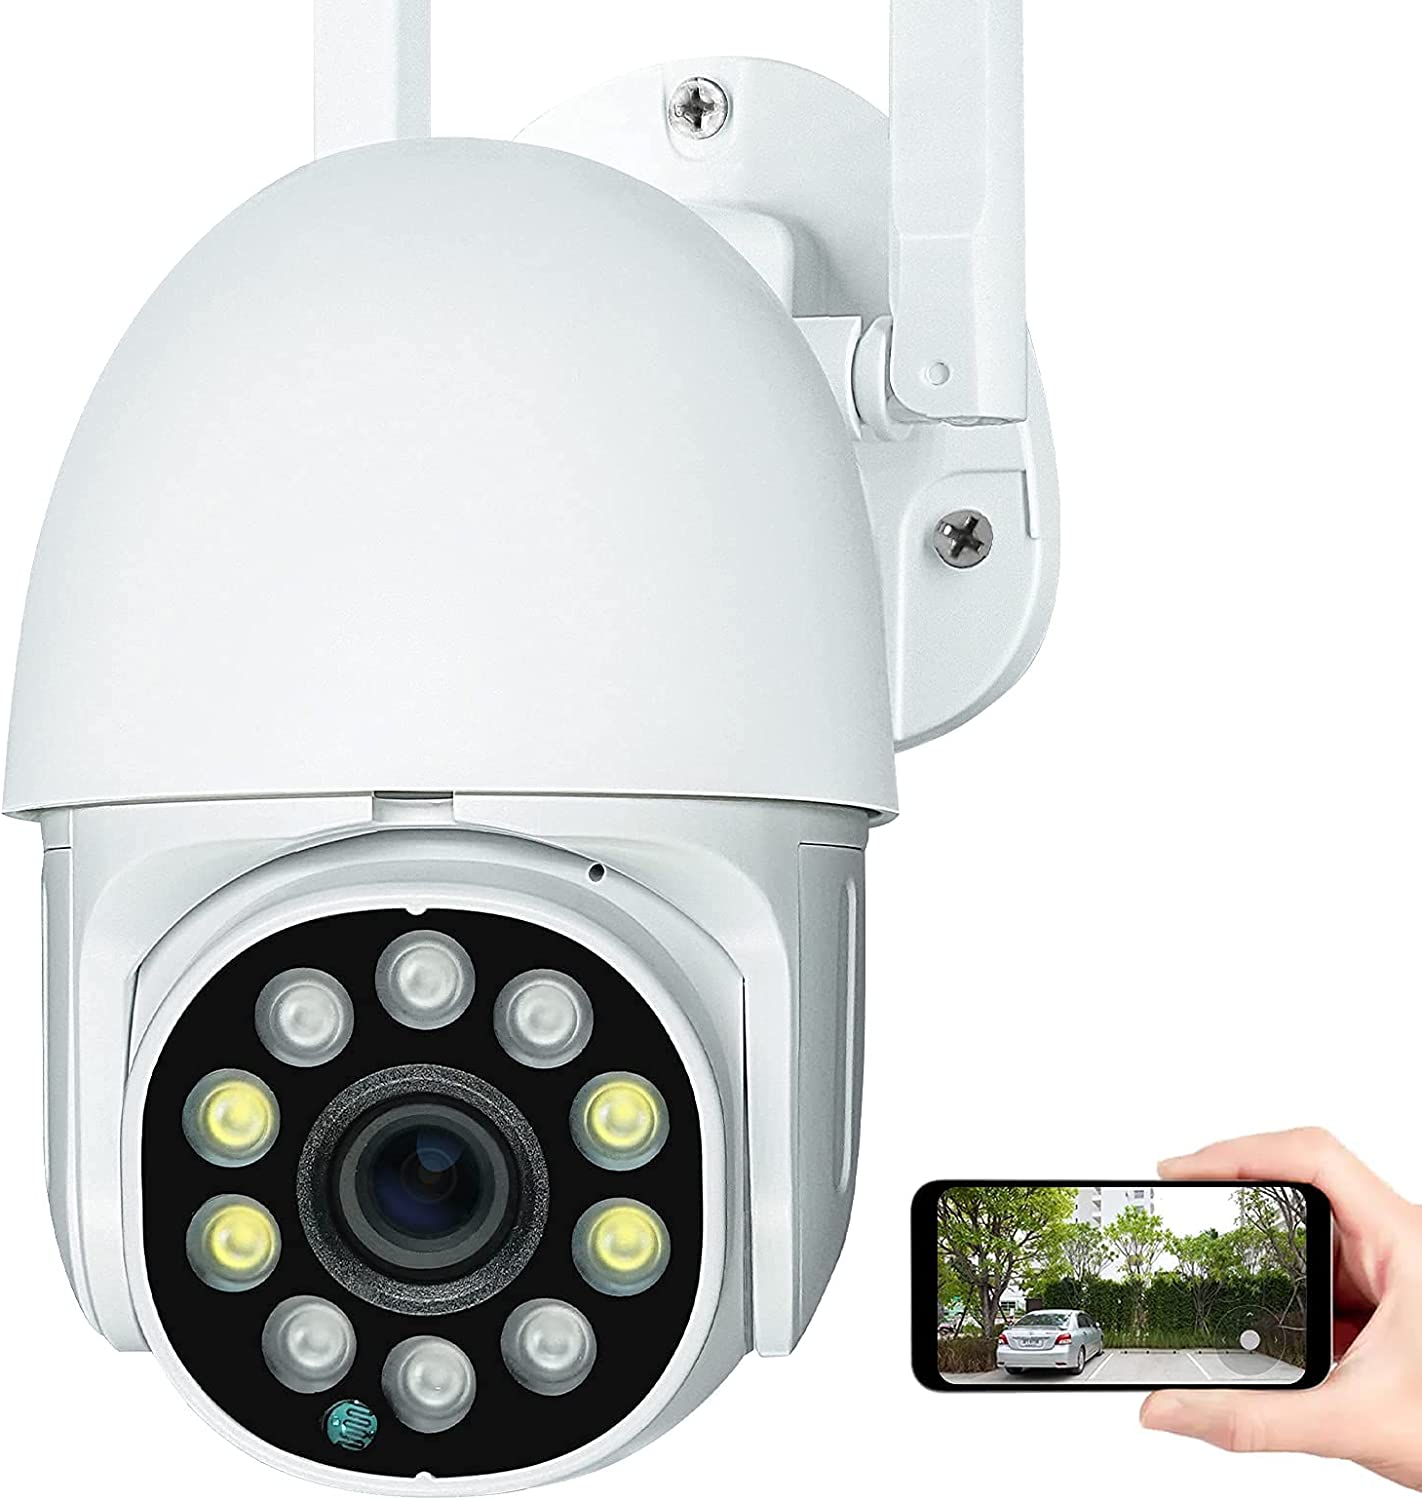 Security Outdoor Camera for Home use, Surveillance Camera with WiFi, 2-Way Audio with Mic and Speaker,360° View,1080P,PTZ,IP66,Compatible with Alexa and Google Assistant